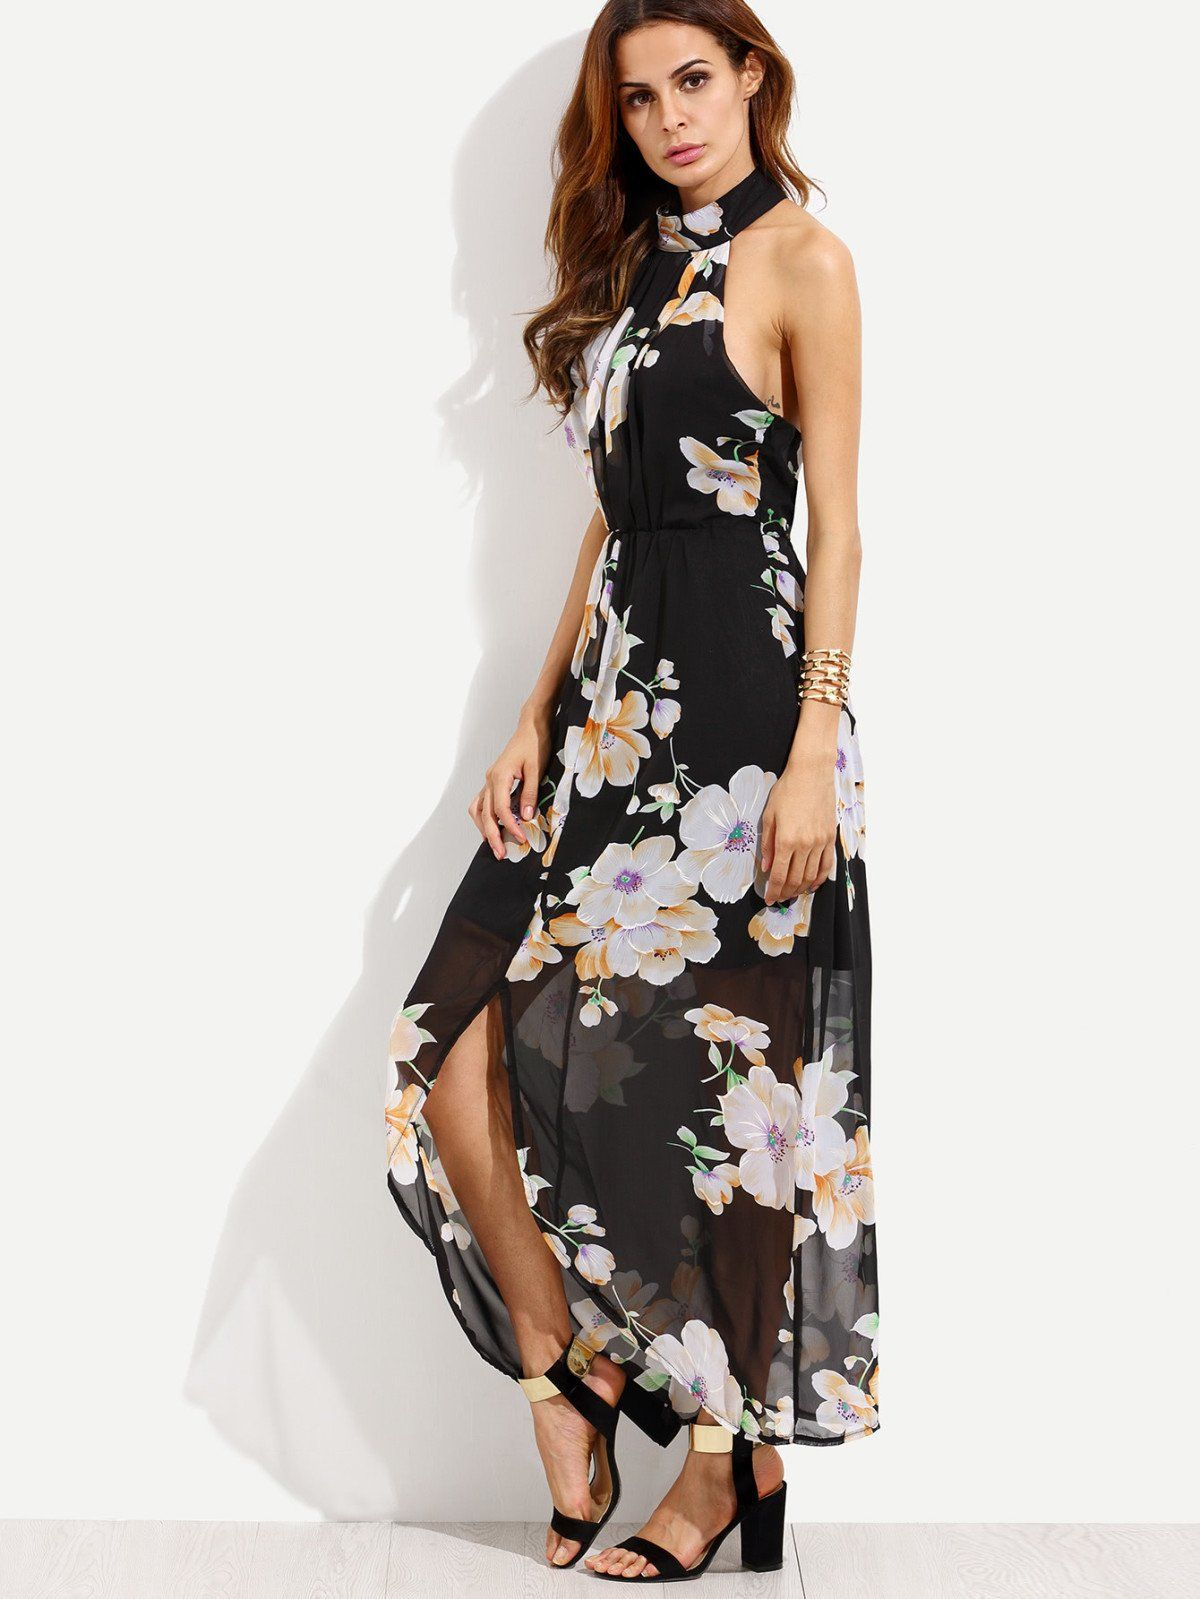 Flower print halterneck slit chiffon dress flower prints chiffon